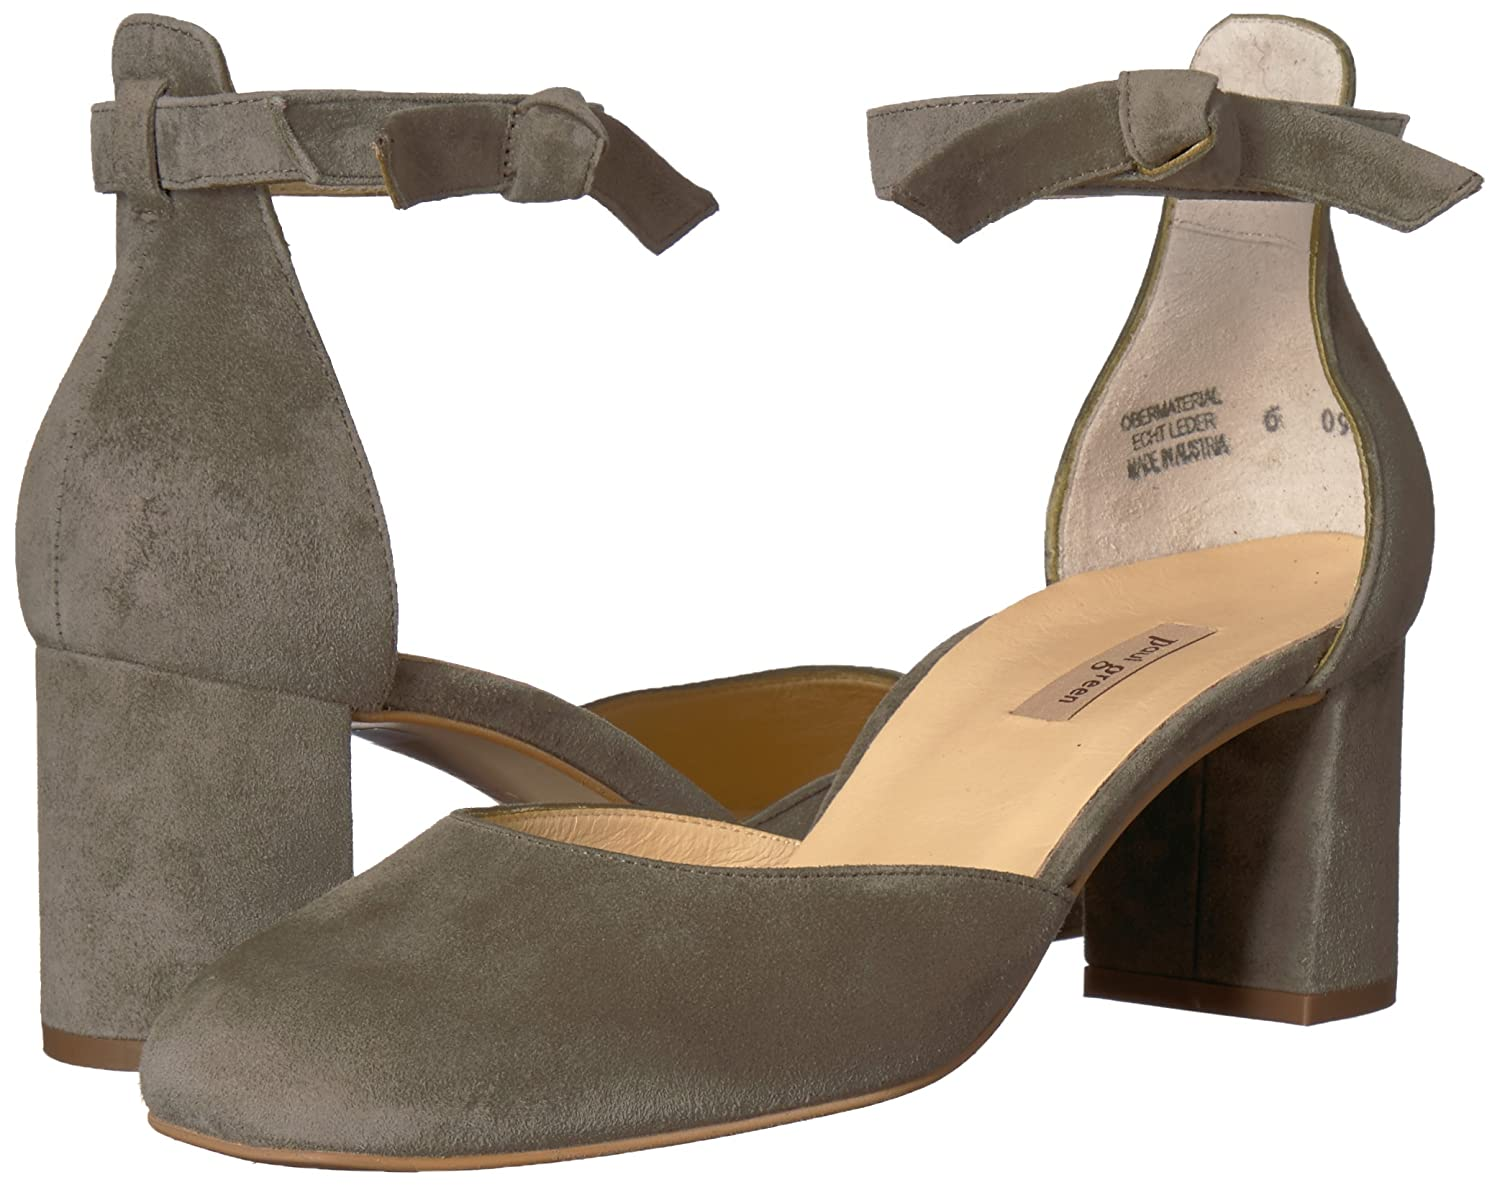 Paul Green Womens Susan Heel Heeled Sandal